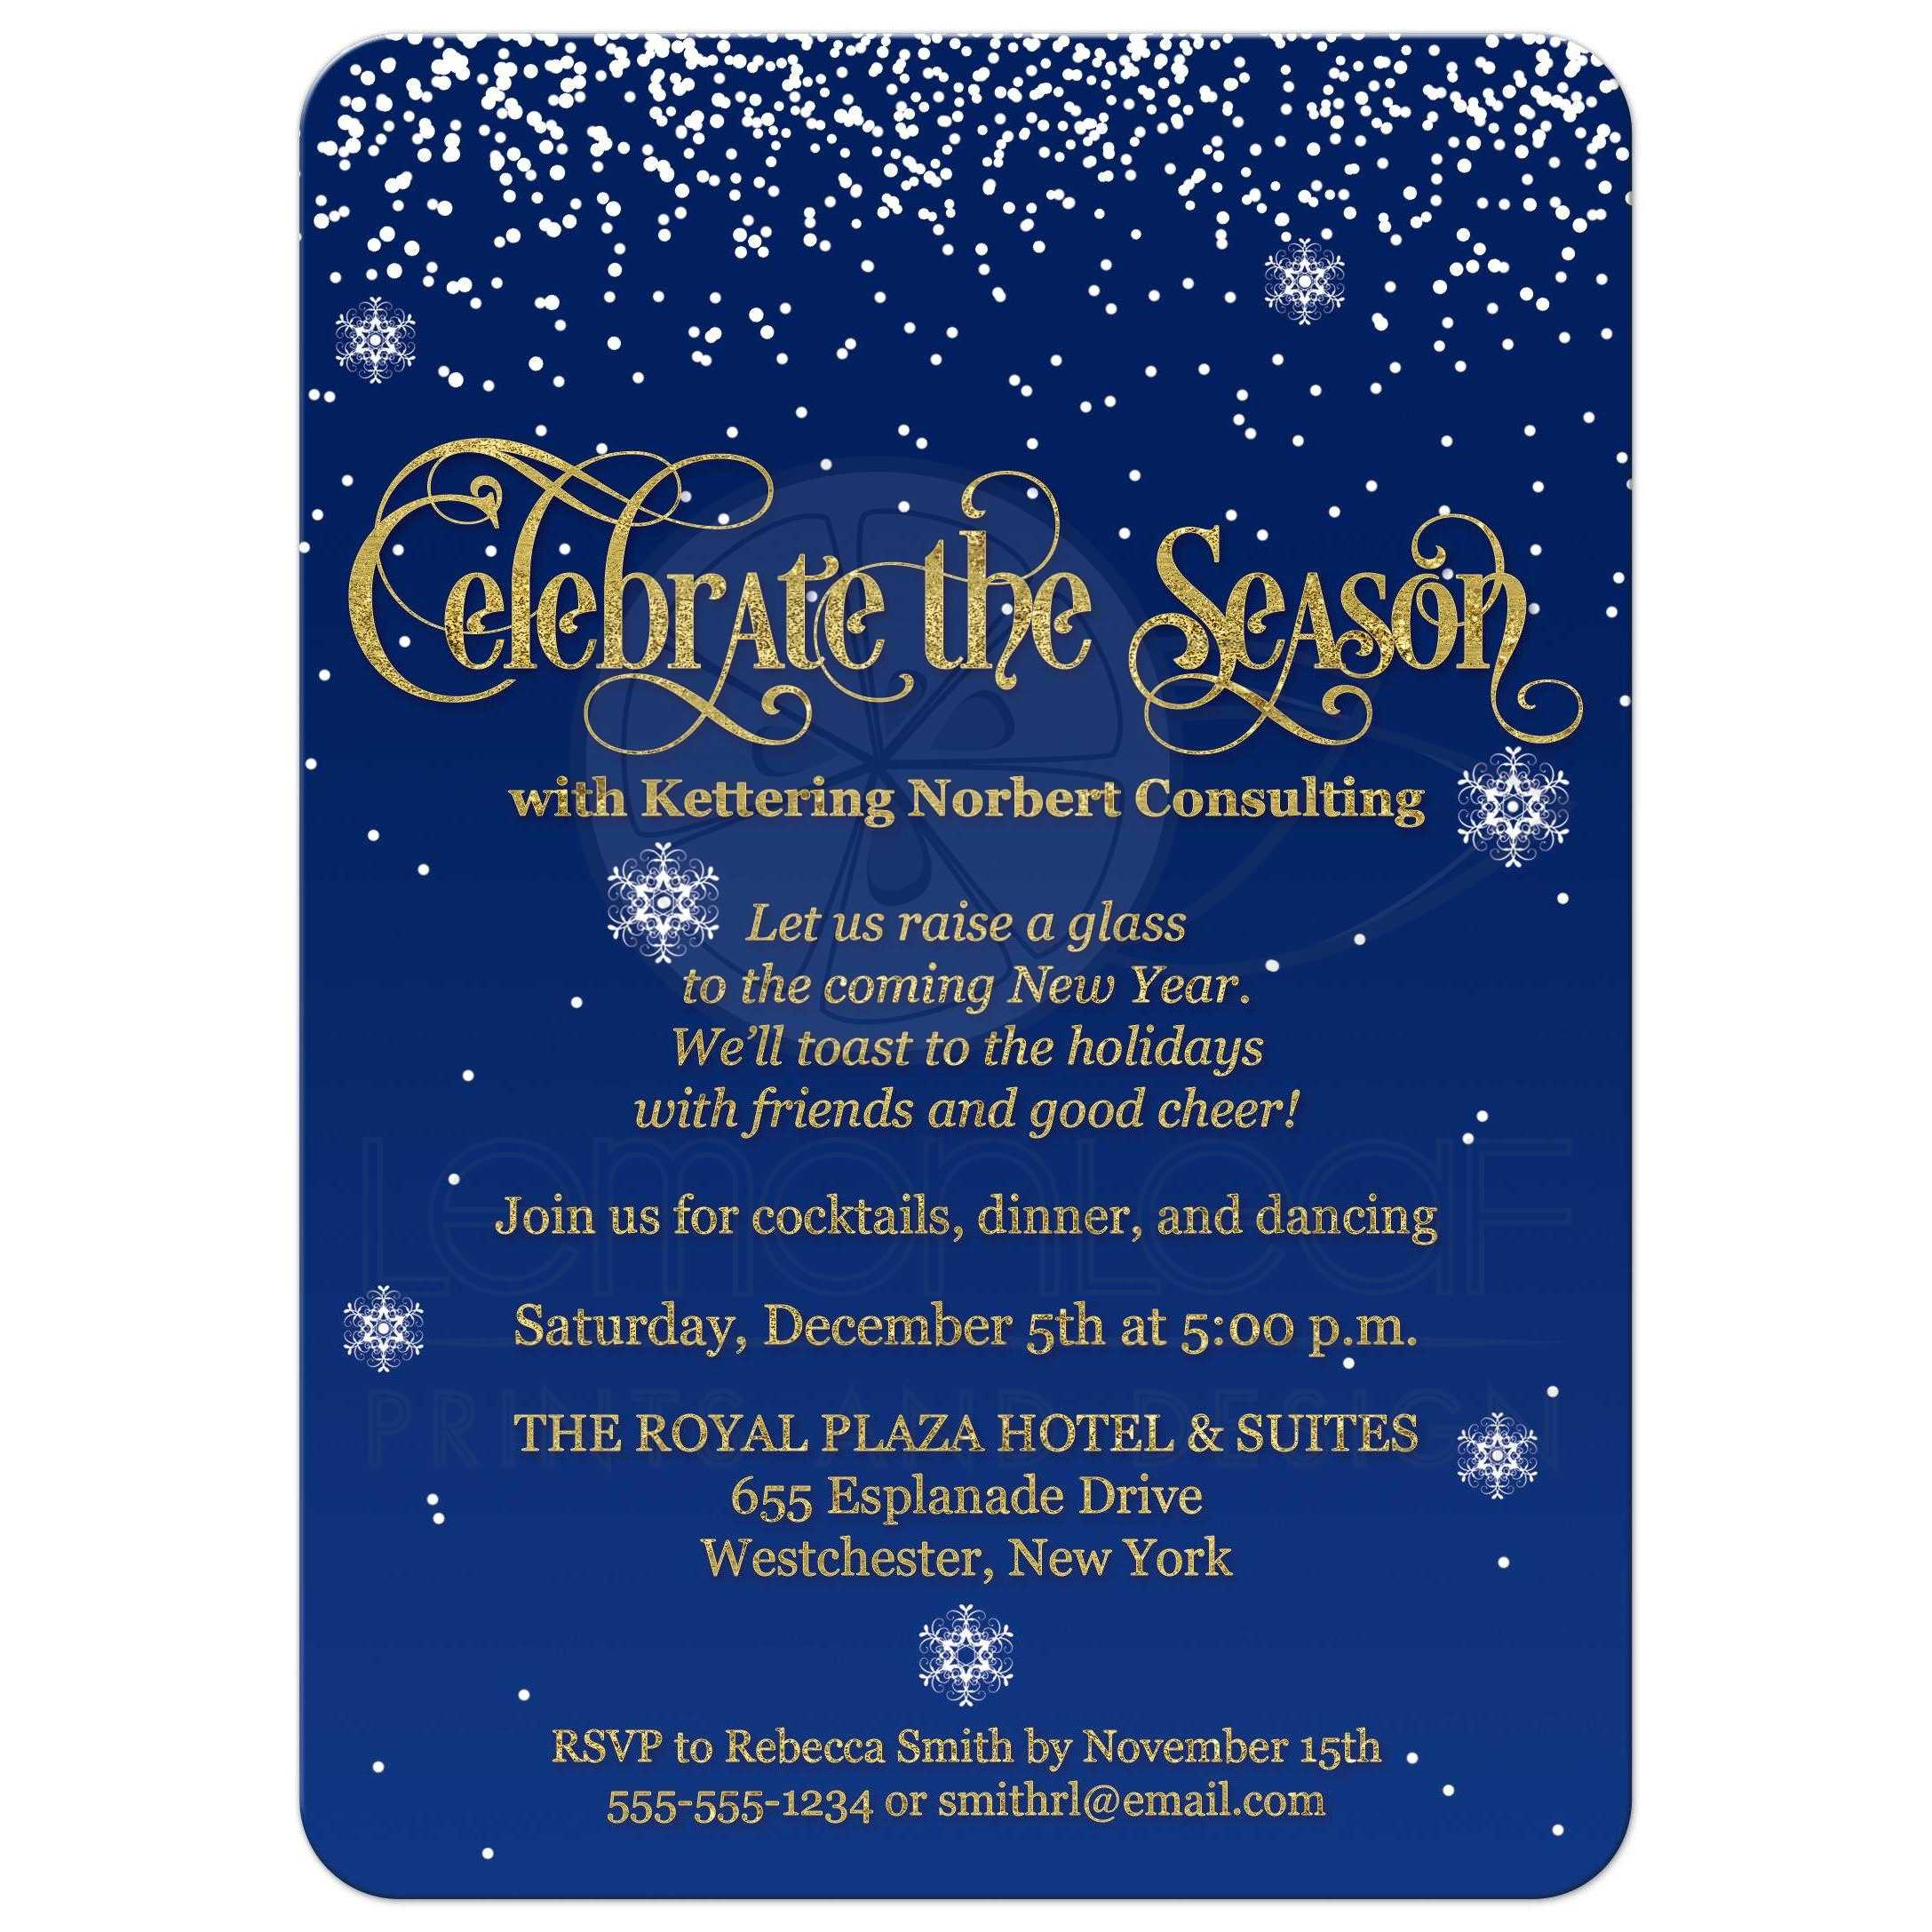 celebrate the season corporate party invite navy gold faux foil glitter falling snow. Black Bedroom Furniture Sets. Home Design Ideas